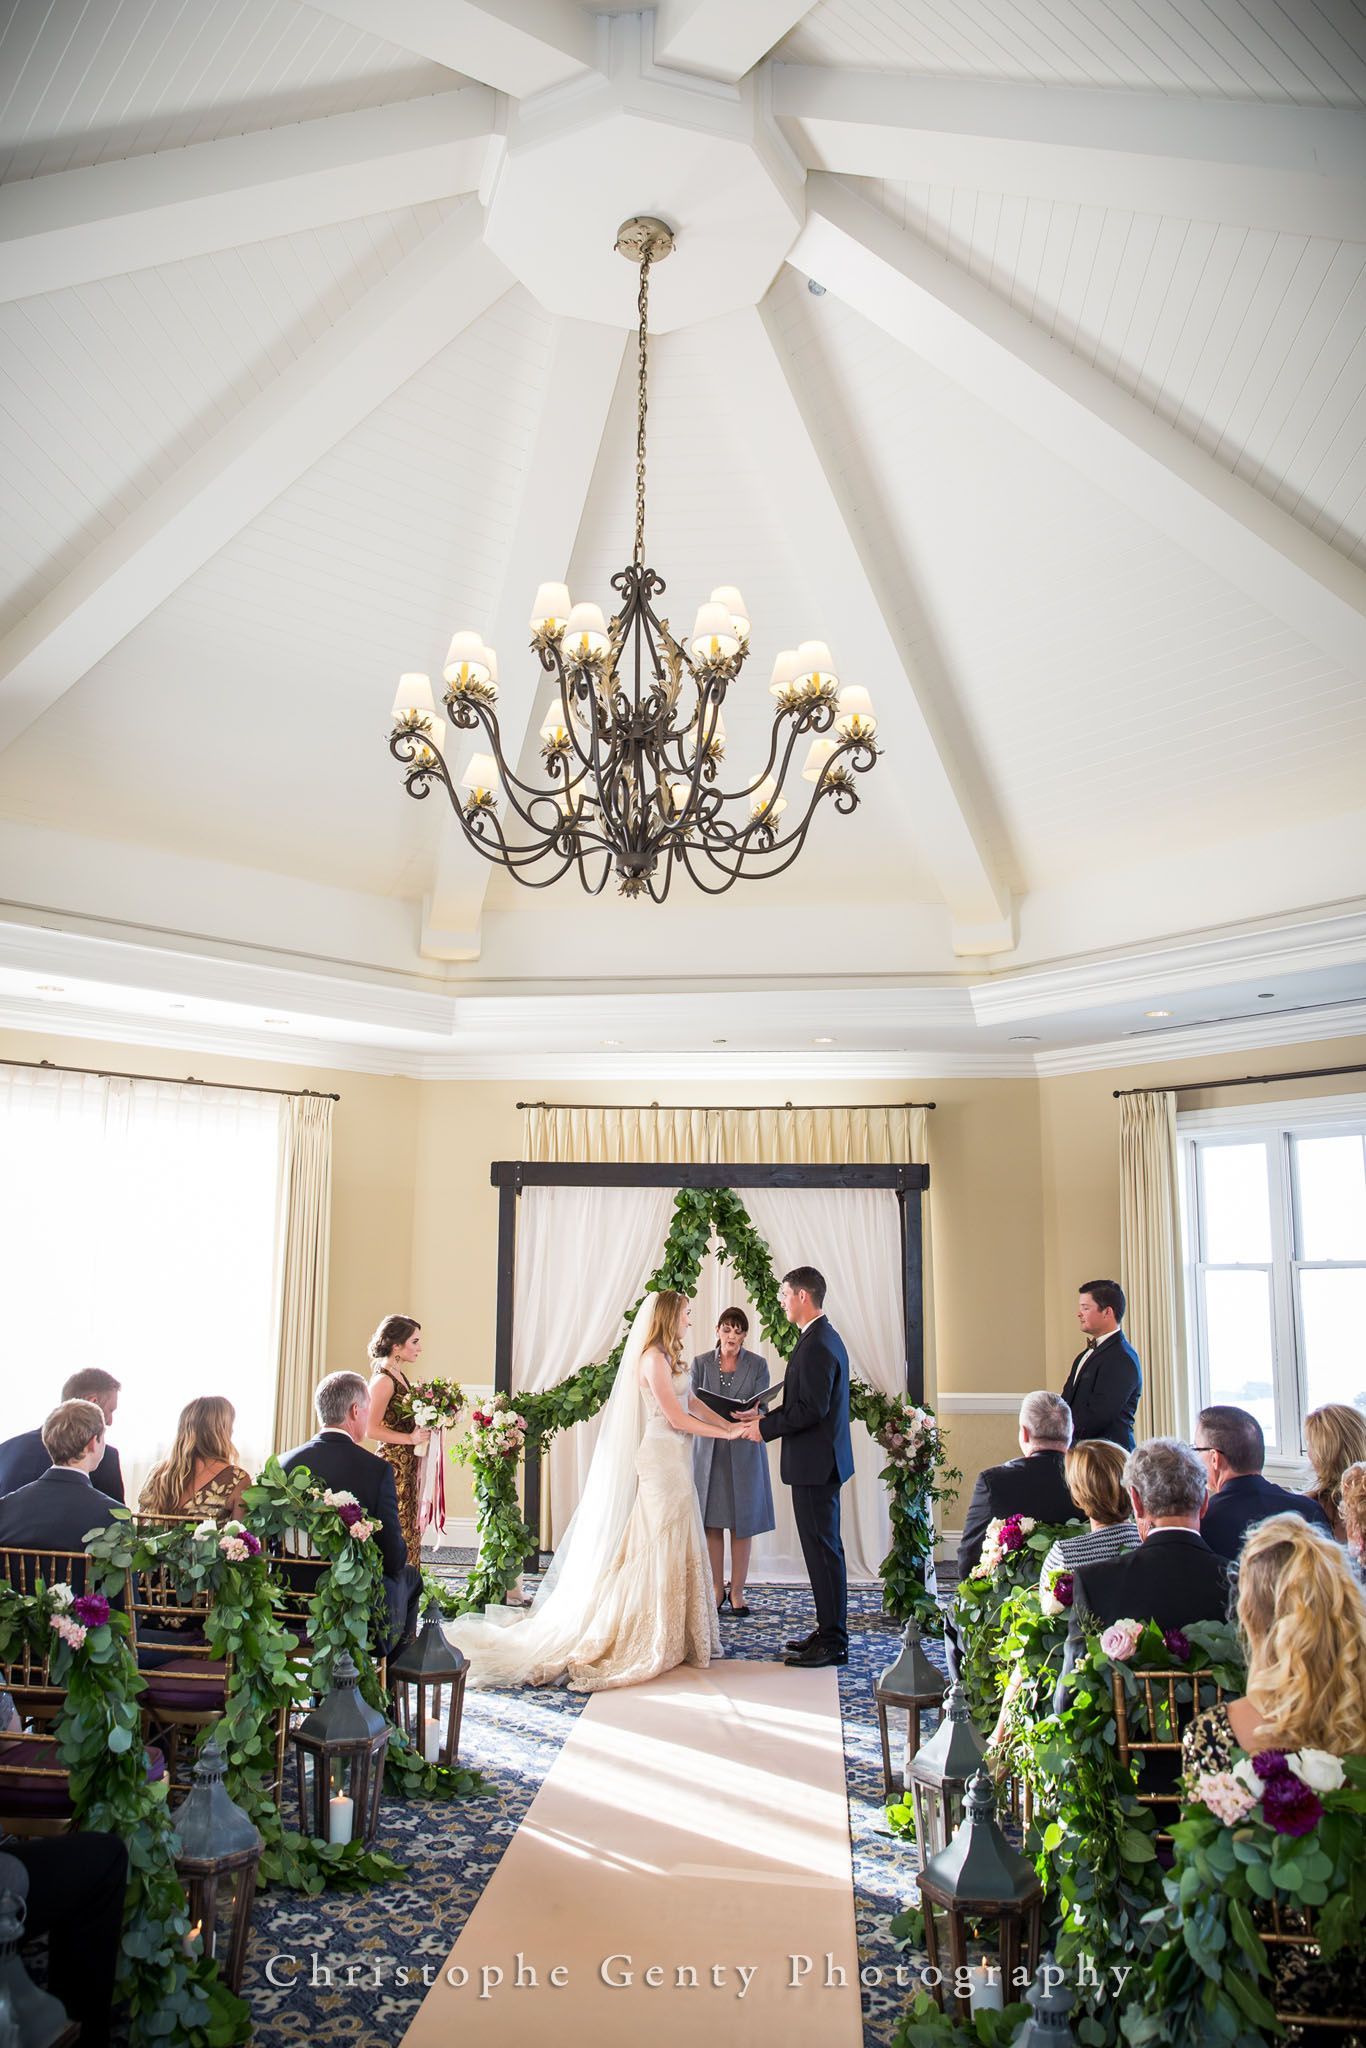 Vows | I Do | Wedding Photography at The Ritz Carlton Half Moon Bay | Half Moon Bay, CA | Wedding Photography | Christophe Genty Photography